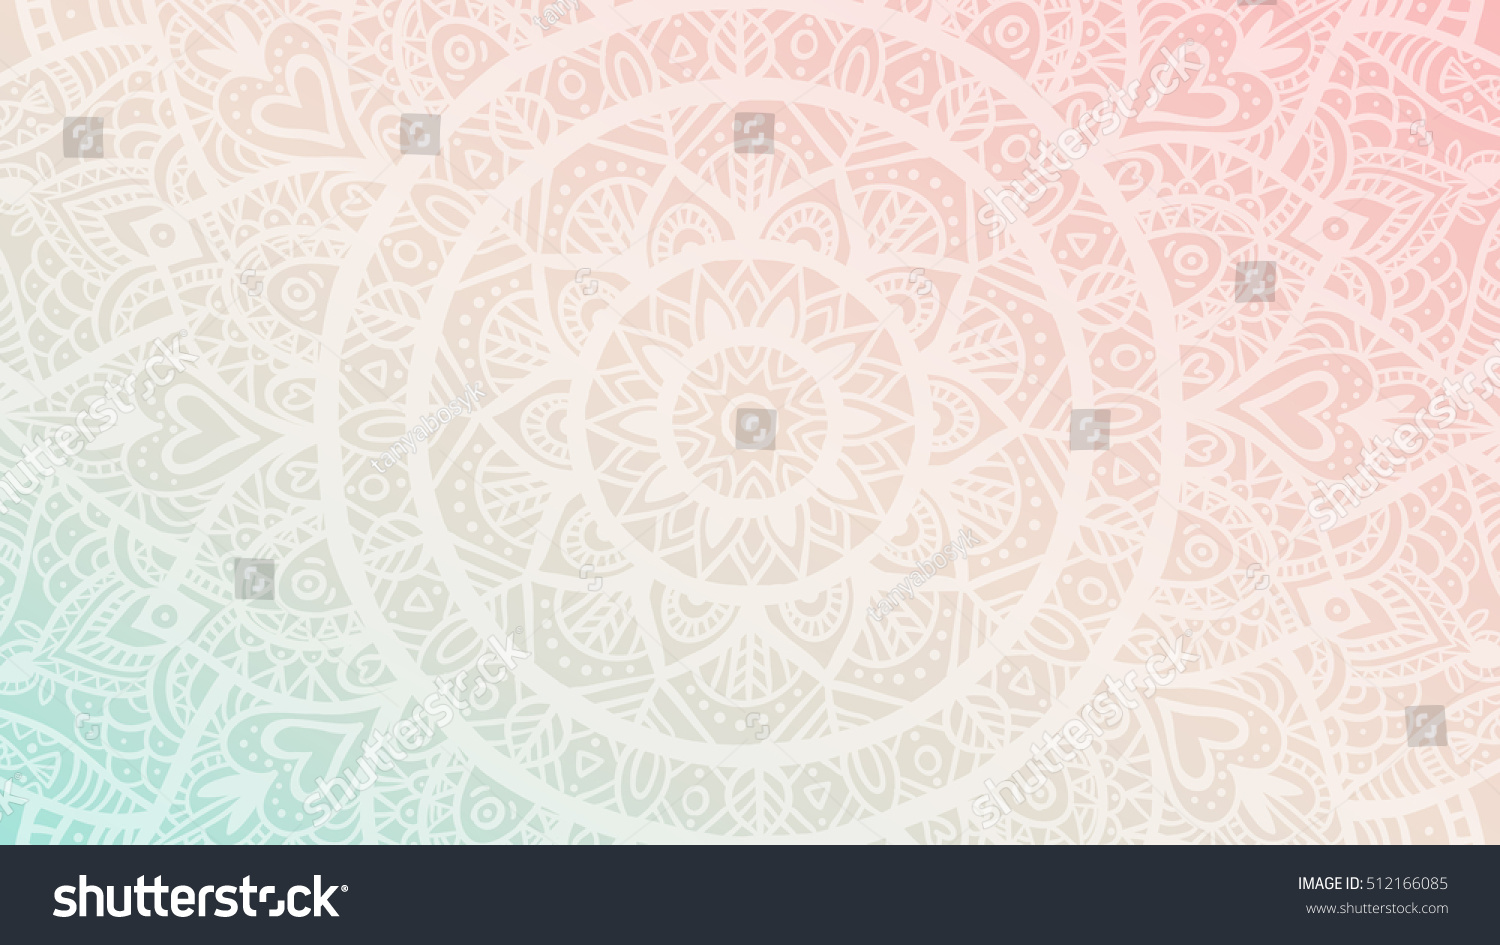 Dreamy Gradient Wallpaper With Mandala Pattern Vector Background For Yoga Meditation Poster